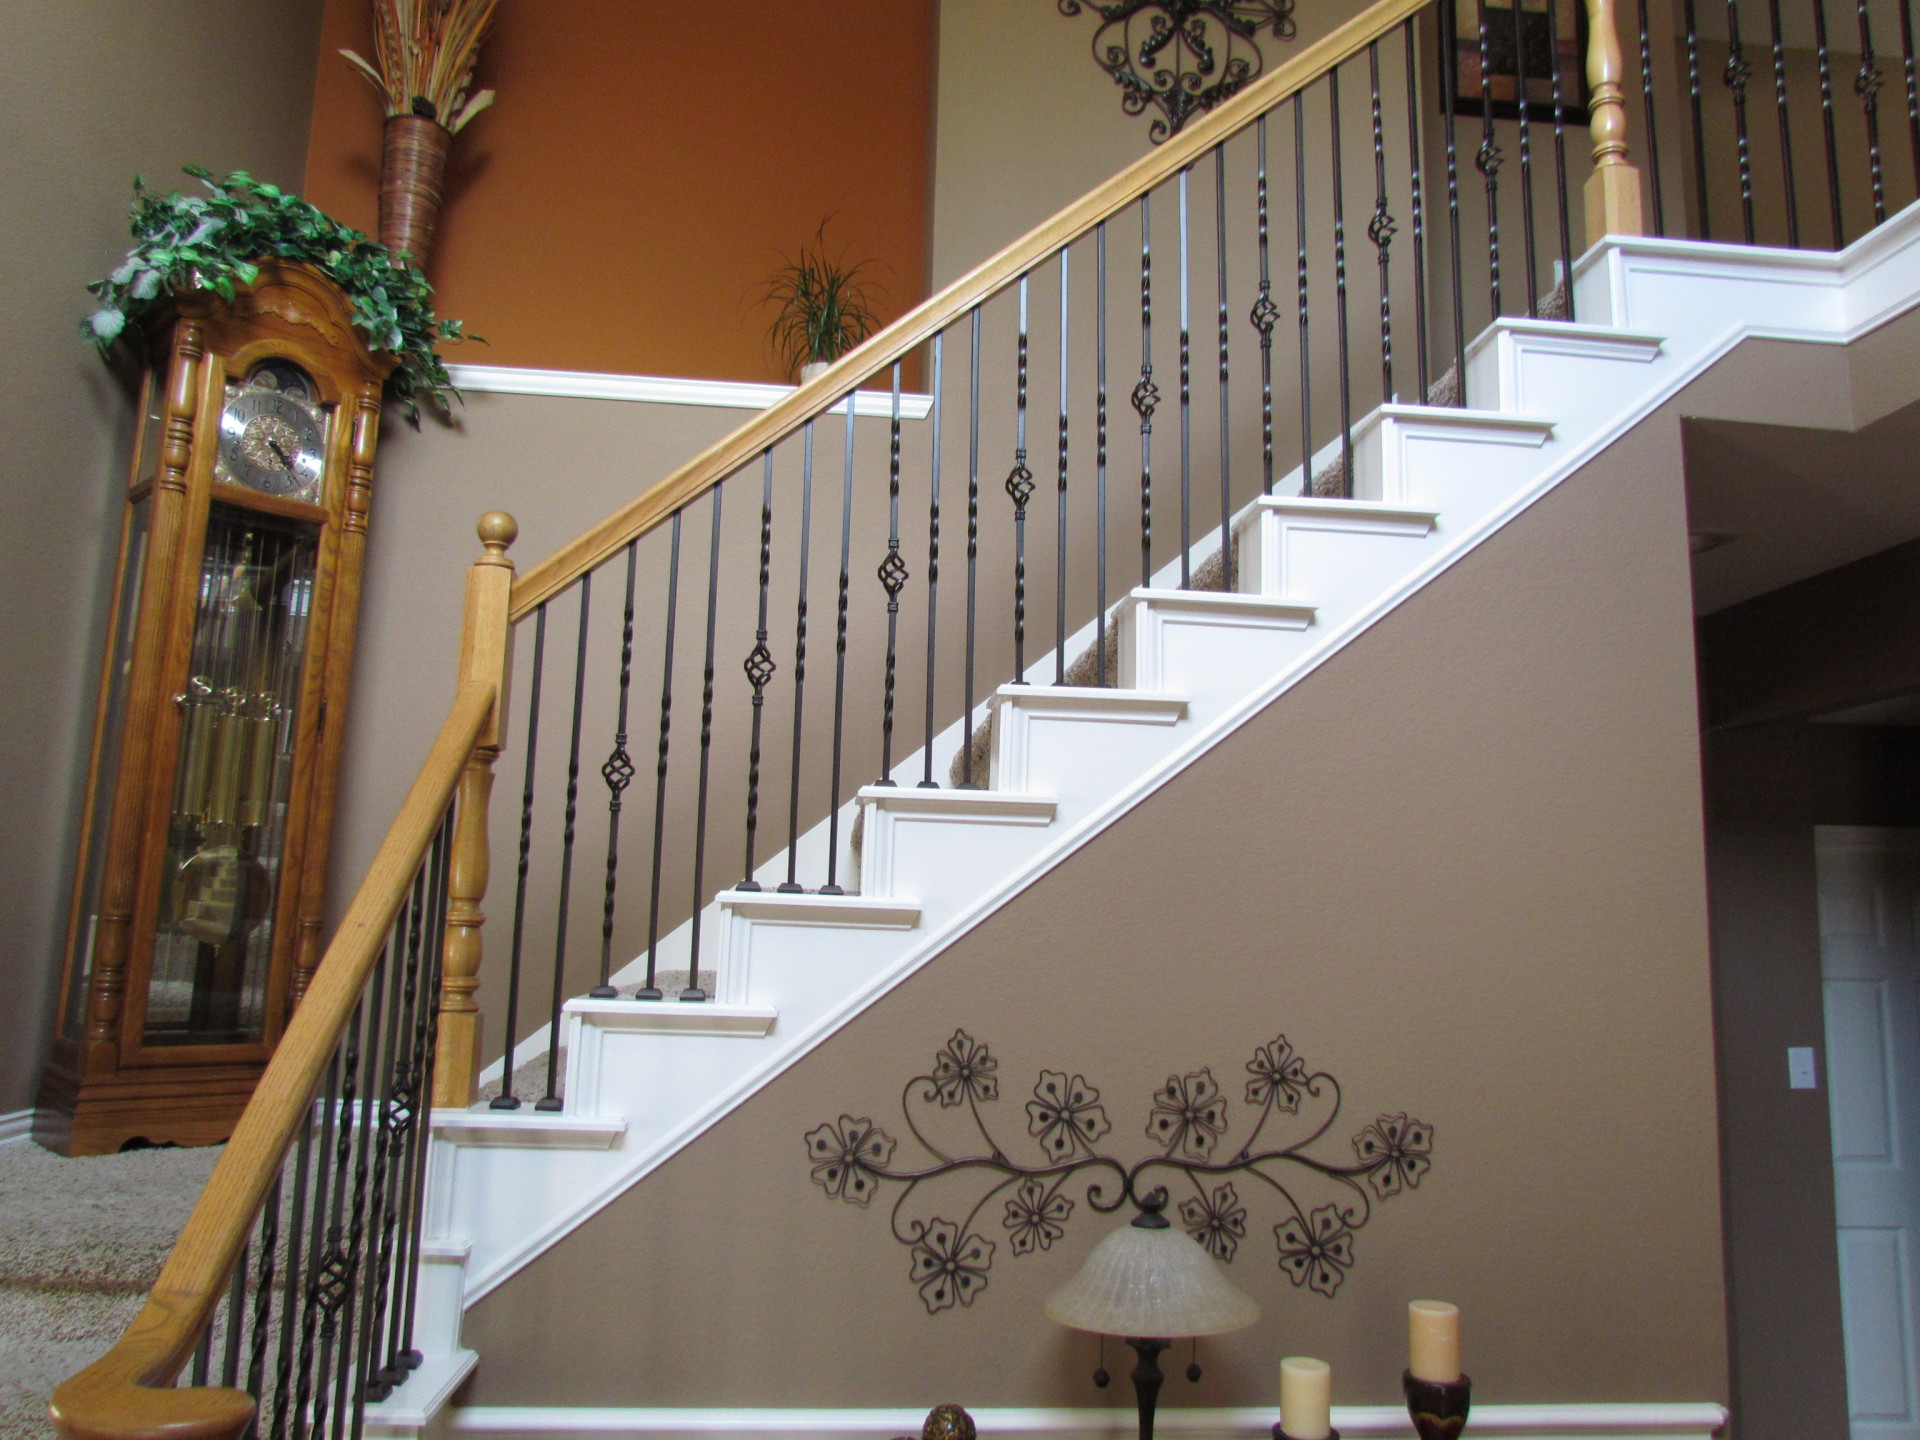 Top selling parts for stairs